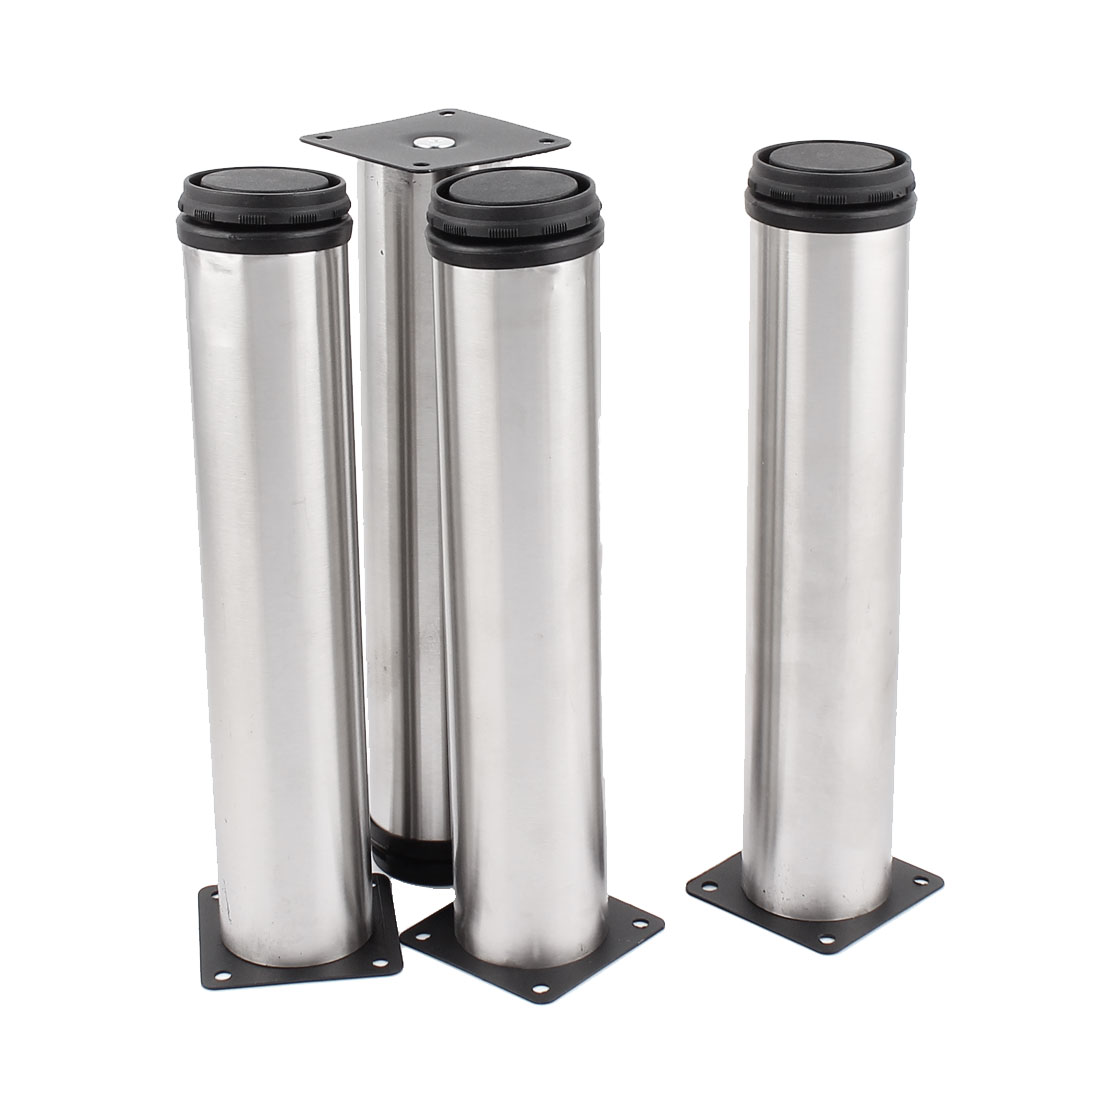 250mm Round Feet Stand Holder Stainless Steel Adjustable Cabinet Legs 4 Pcs